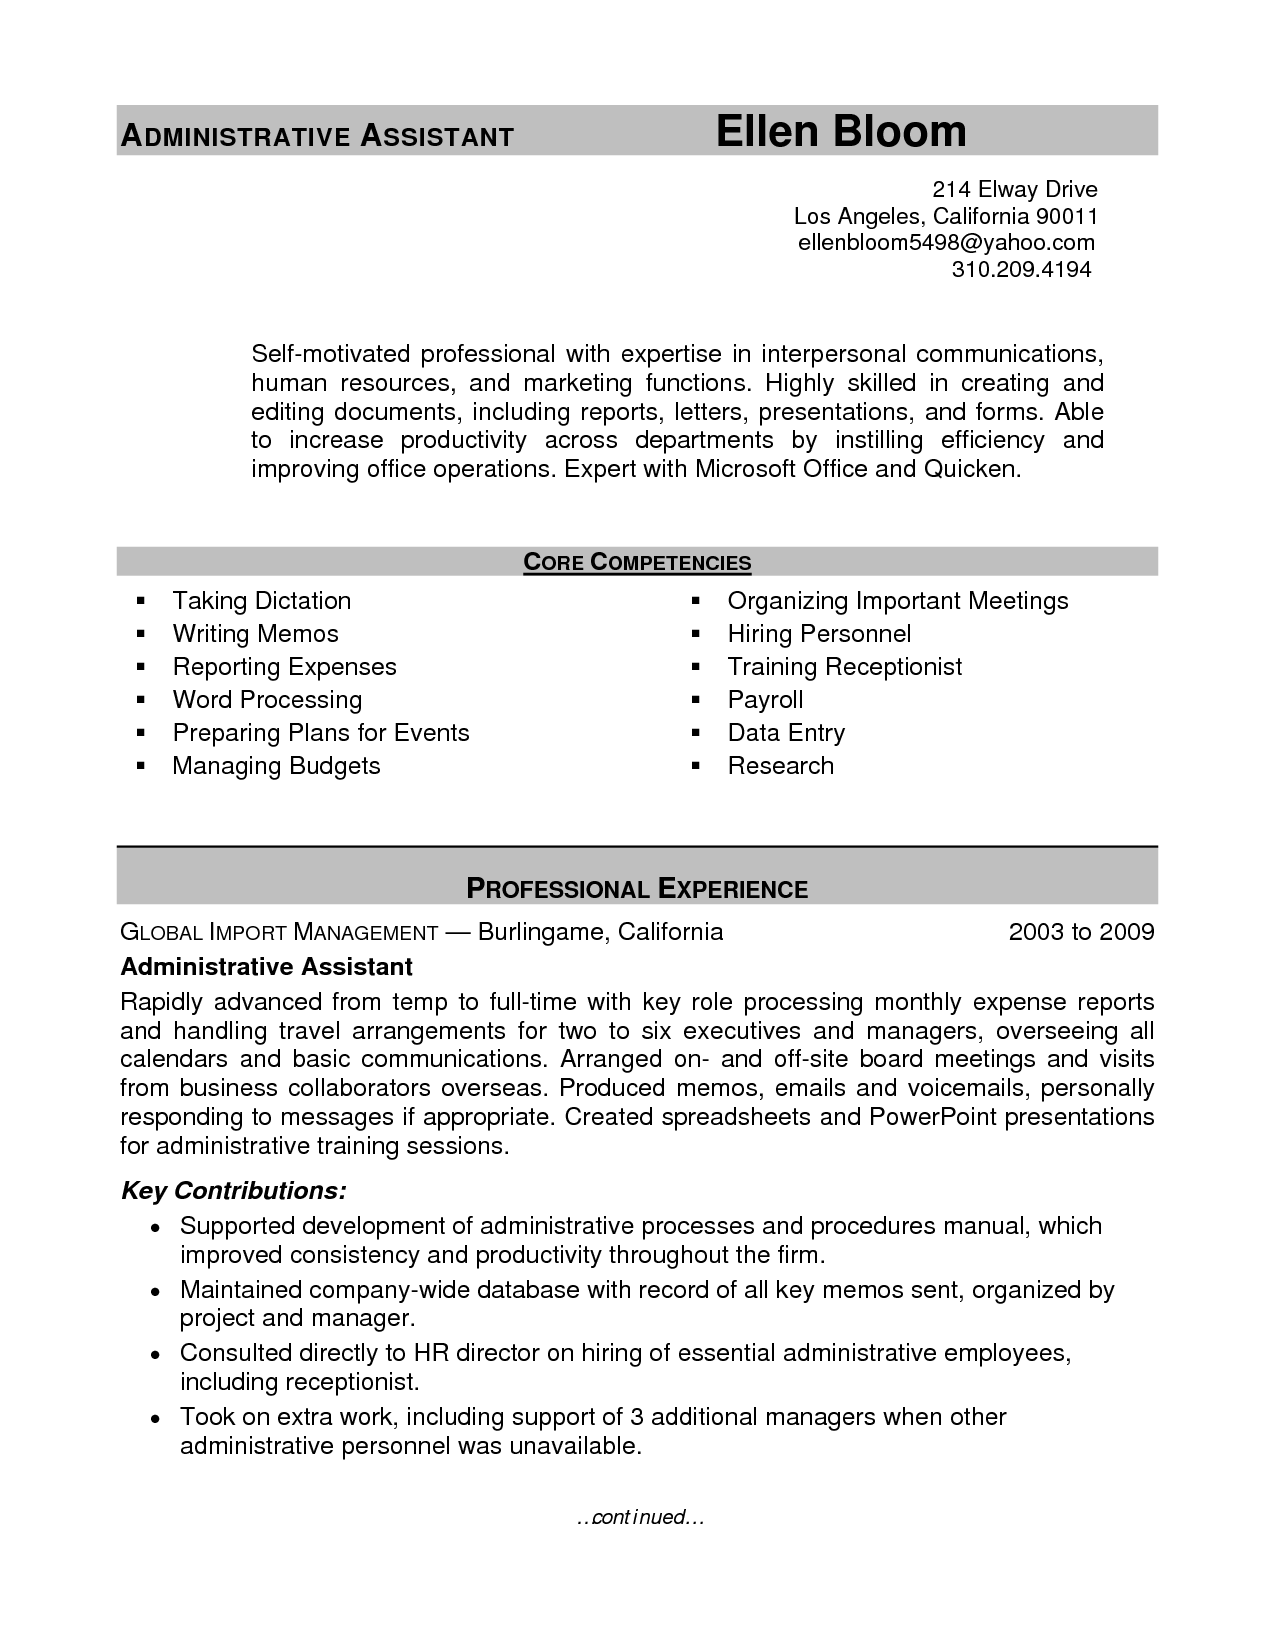 best images about best administration resume templates samples on pinterest professional resume receptionist and accounting - Resume Executive Assistant Duties